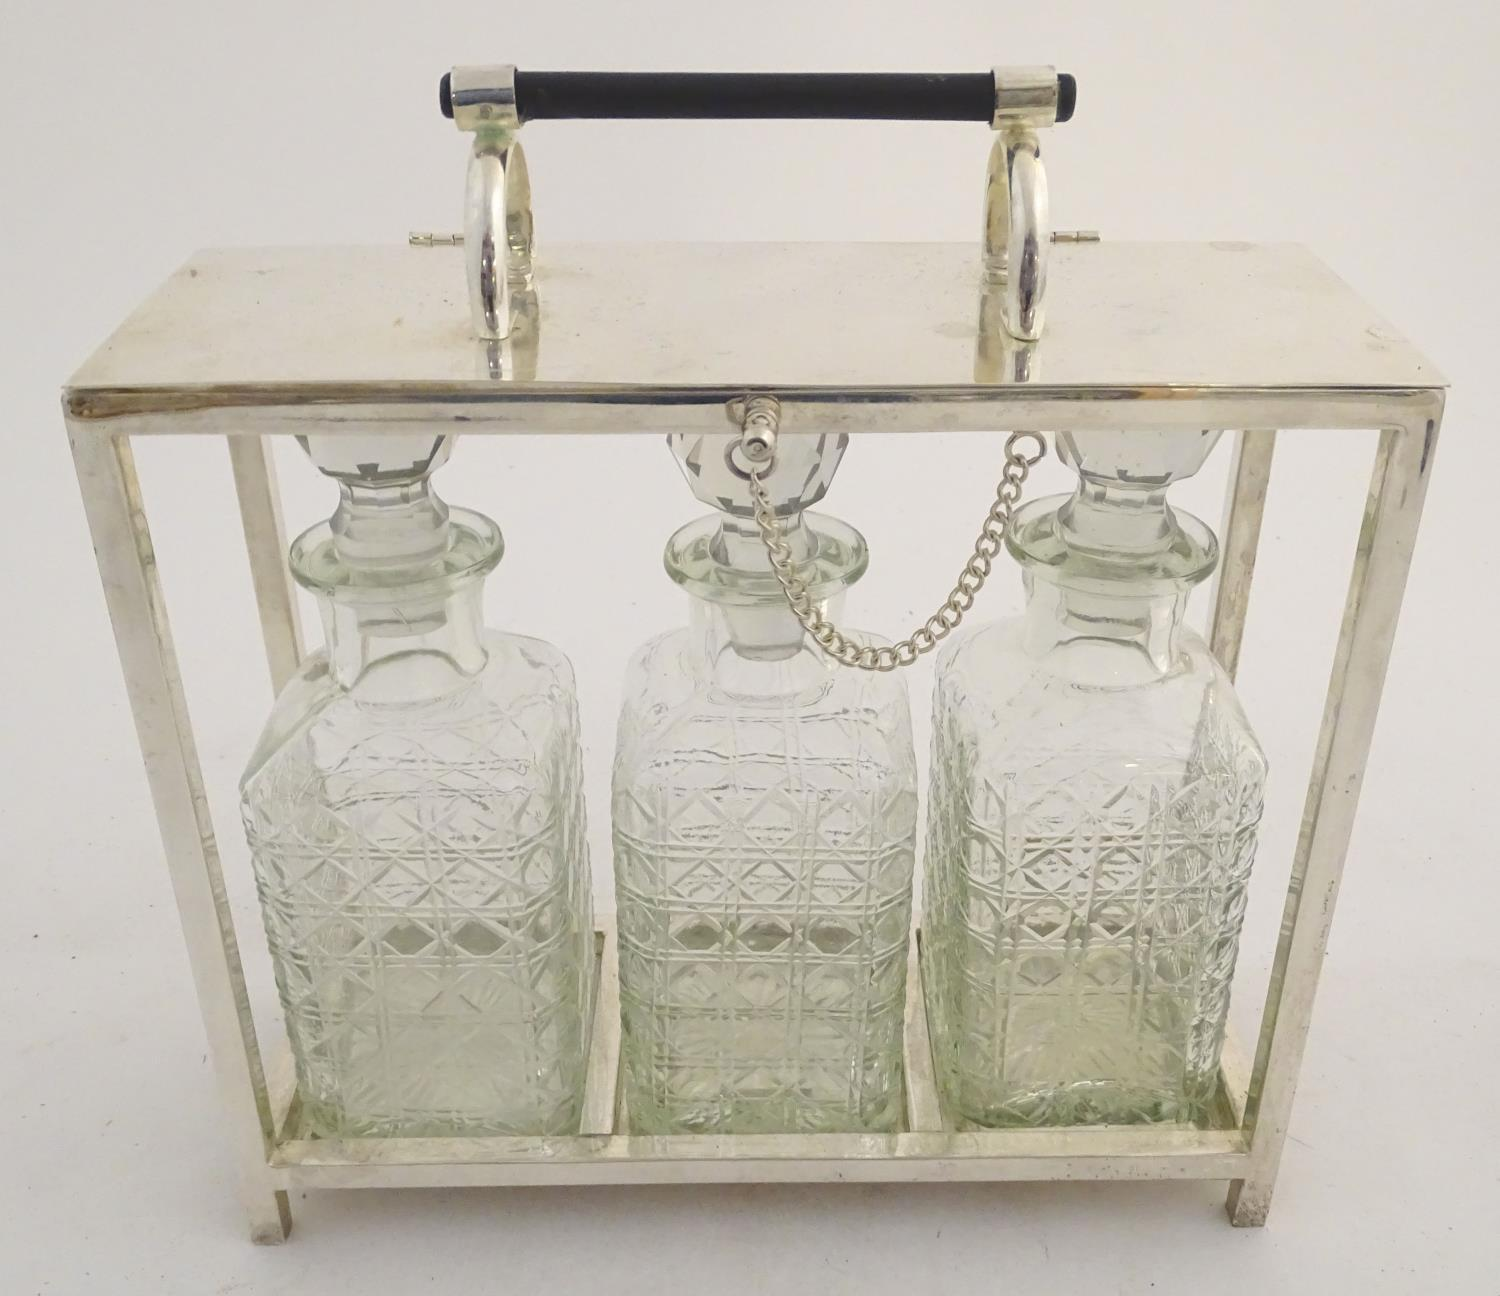 "Lot 886 - A Dr Christopher Dresser style tantalus with provision for three decanters. Approx. 11 1/2"" high"